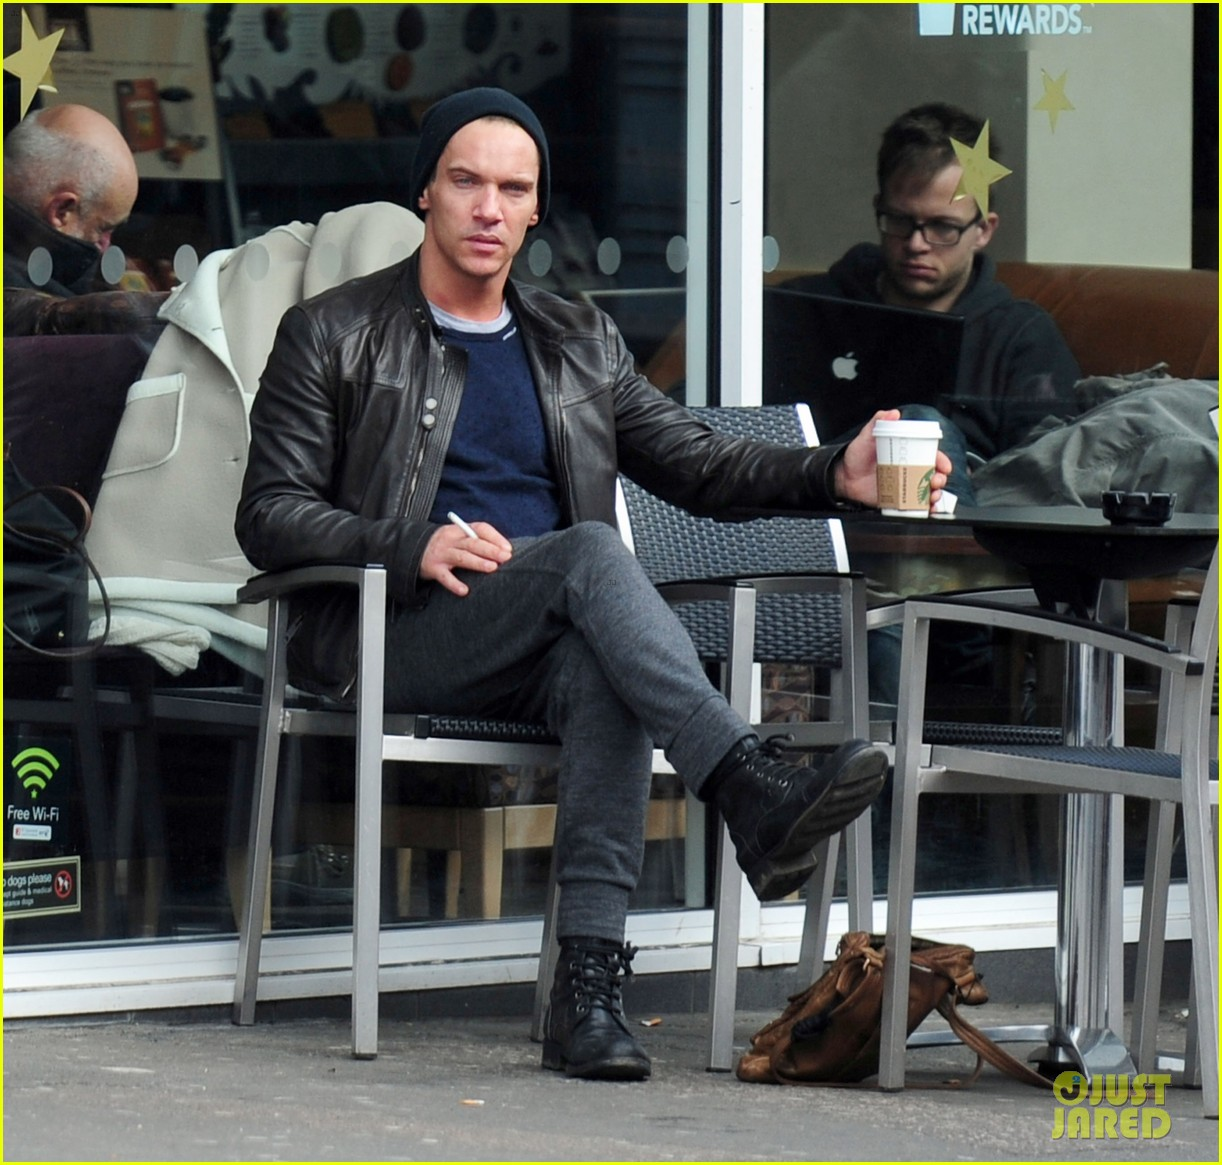 jonathan rhys meyers post rehab